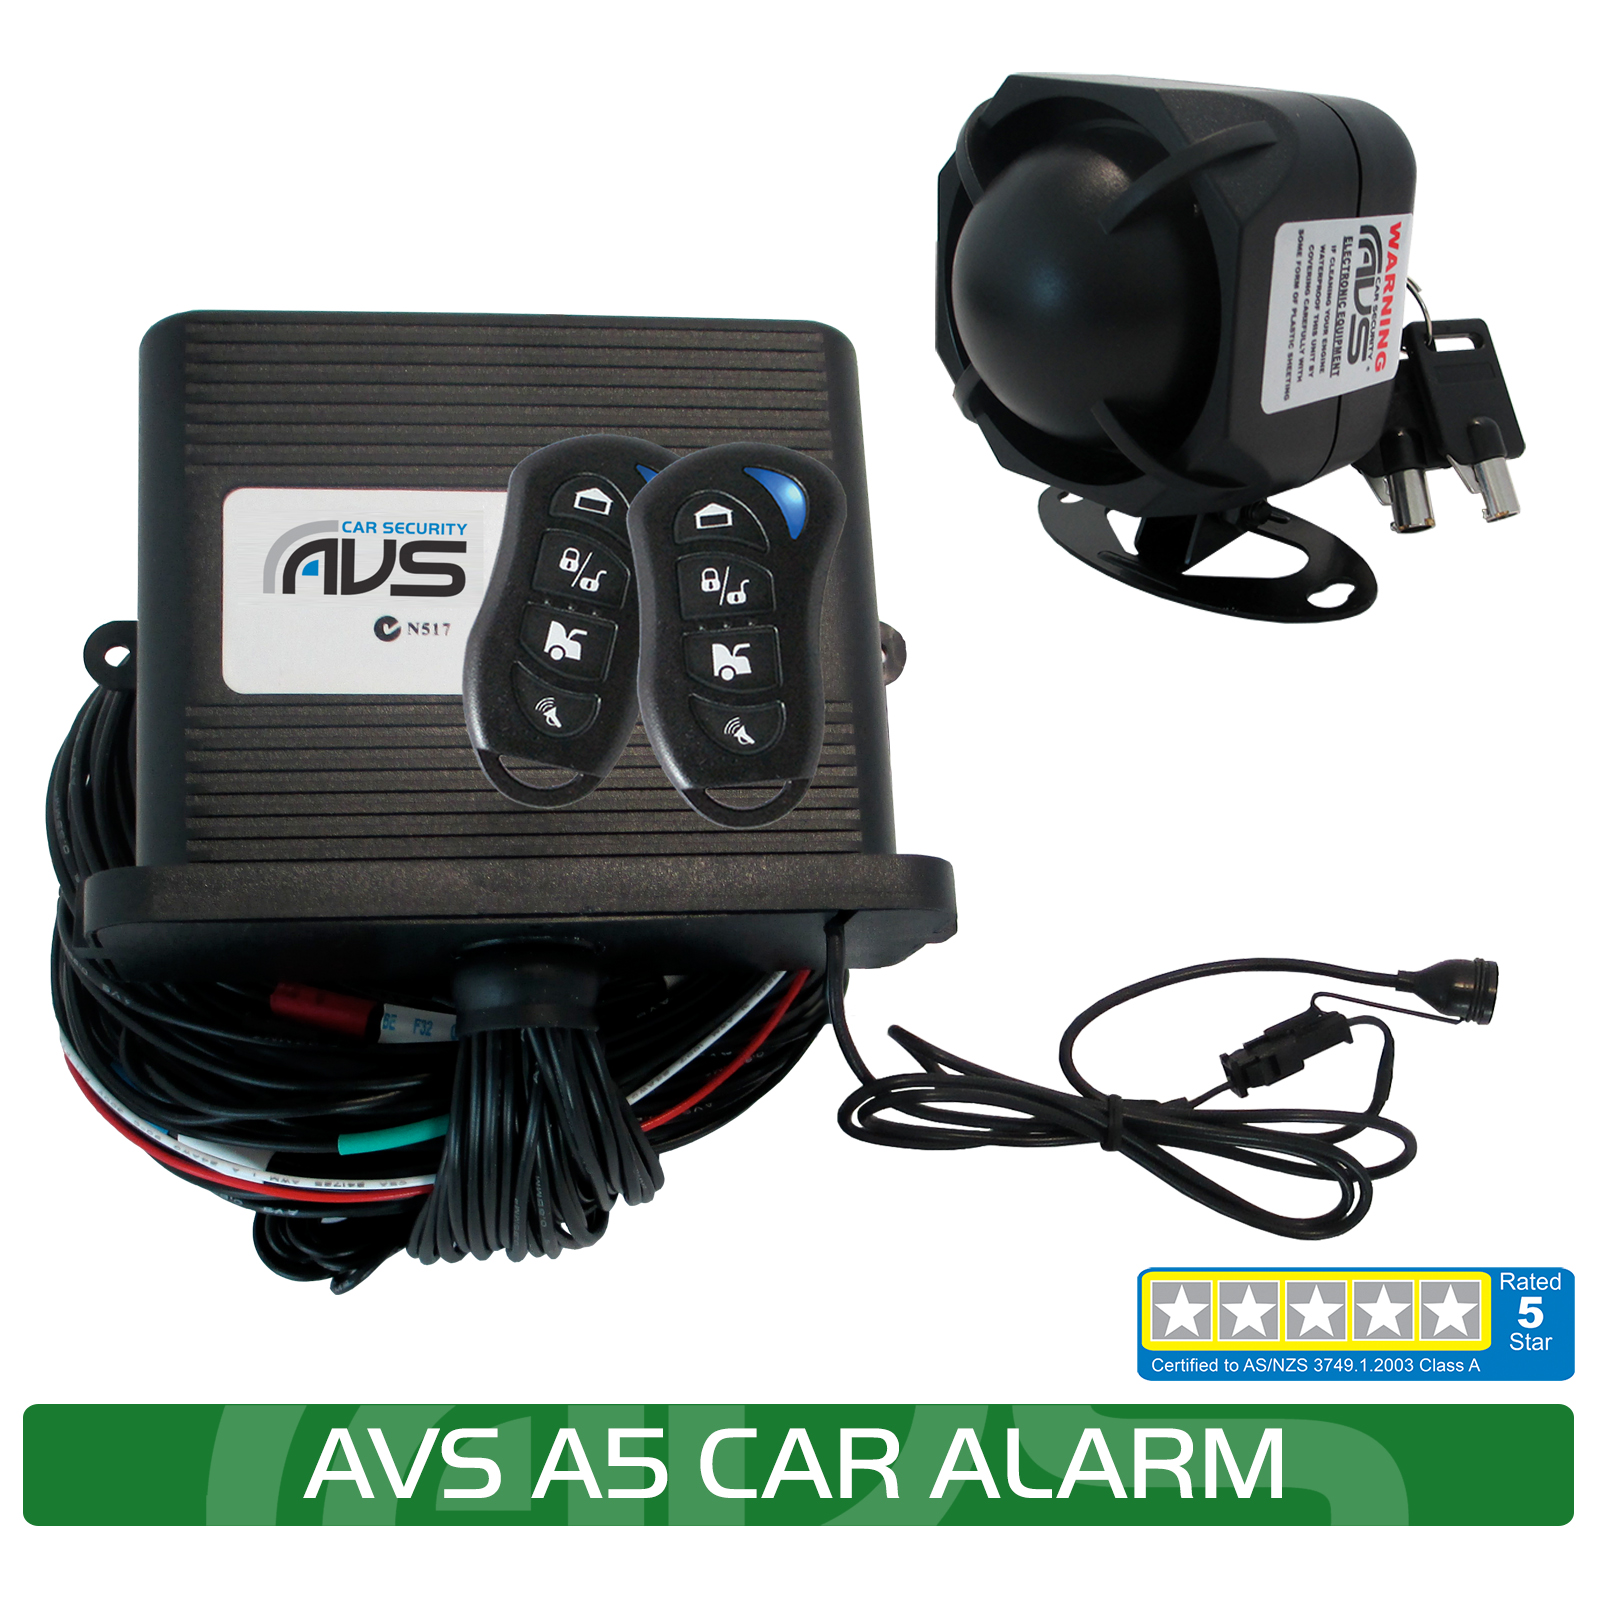 hight resolution of the avs a5 is a great five star car alarm packed full of good features and all at an affordable price